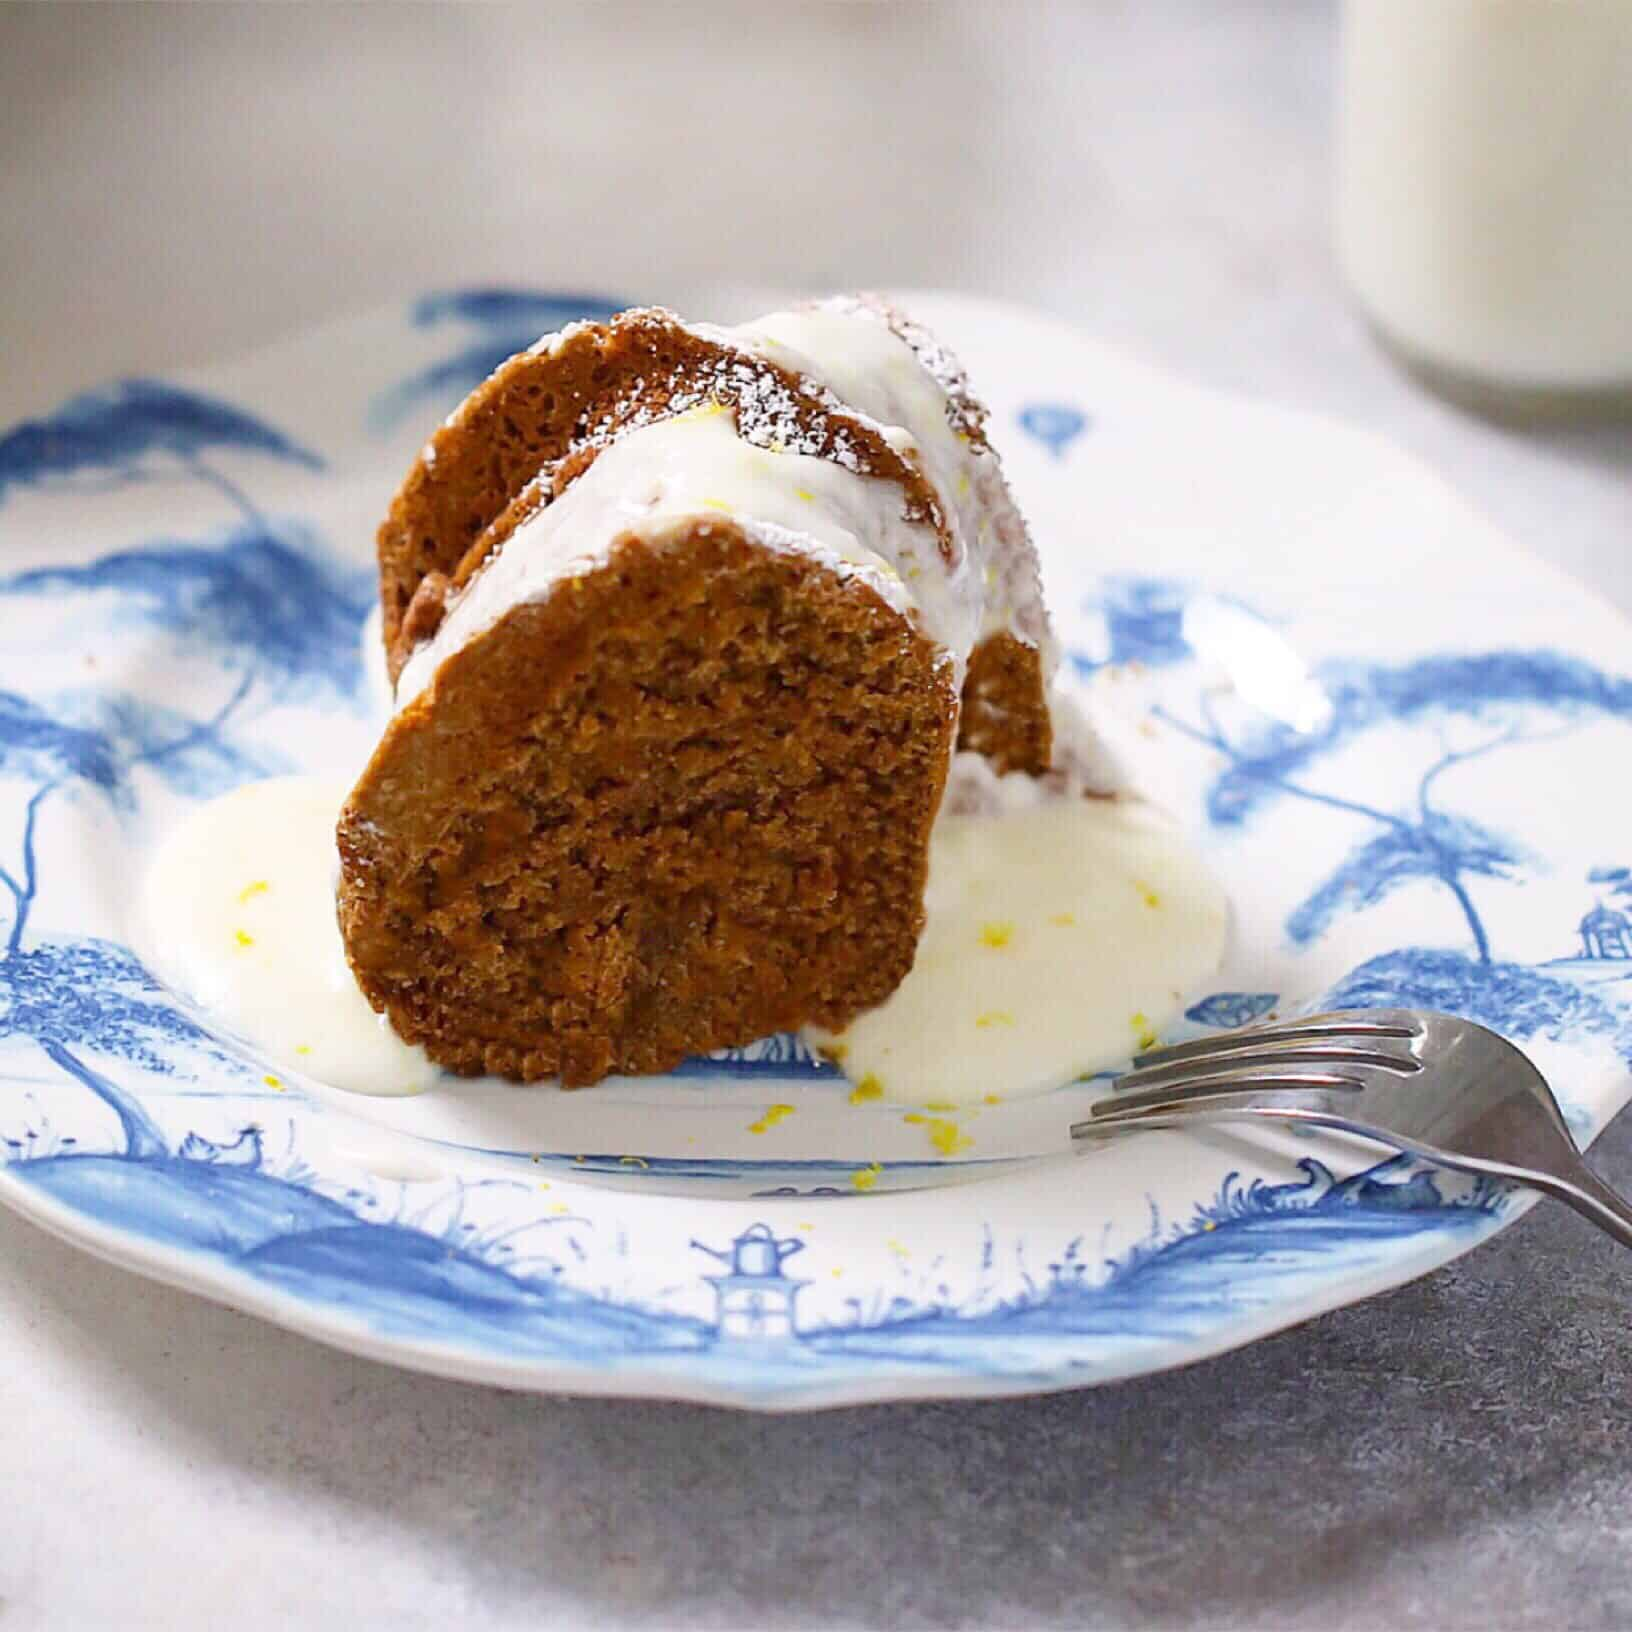 How High To Fill A Bundt Cake Pan